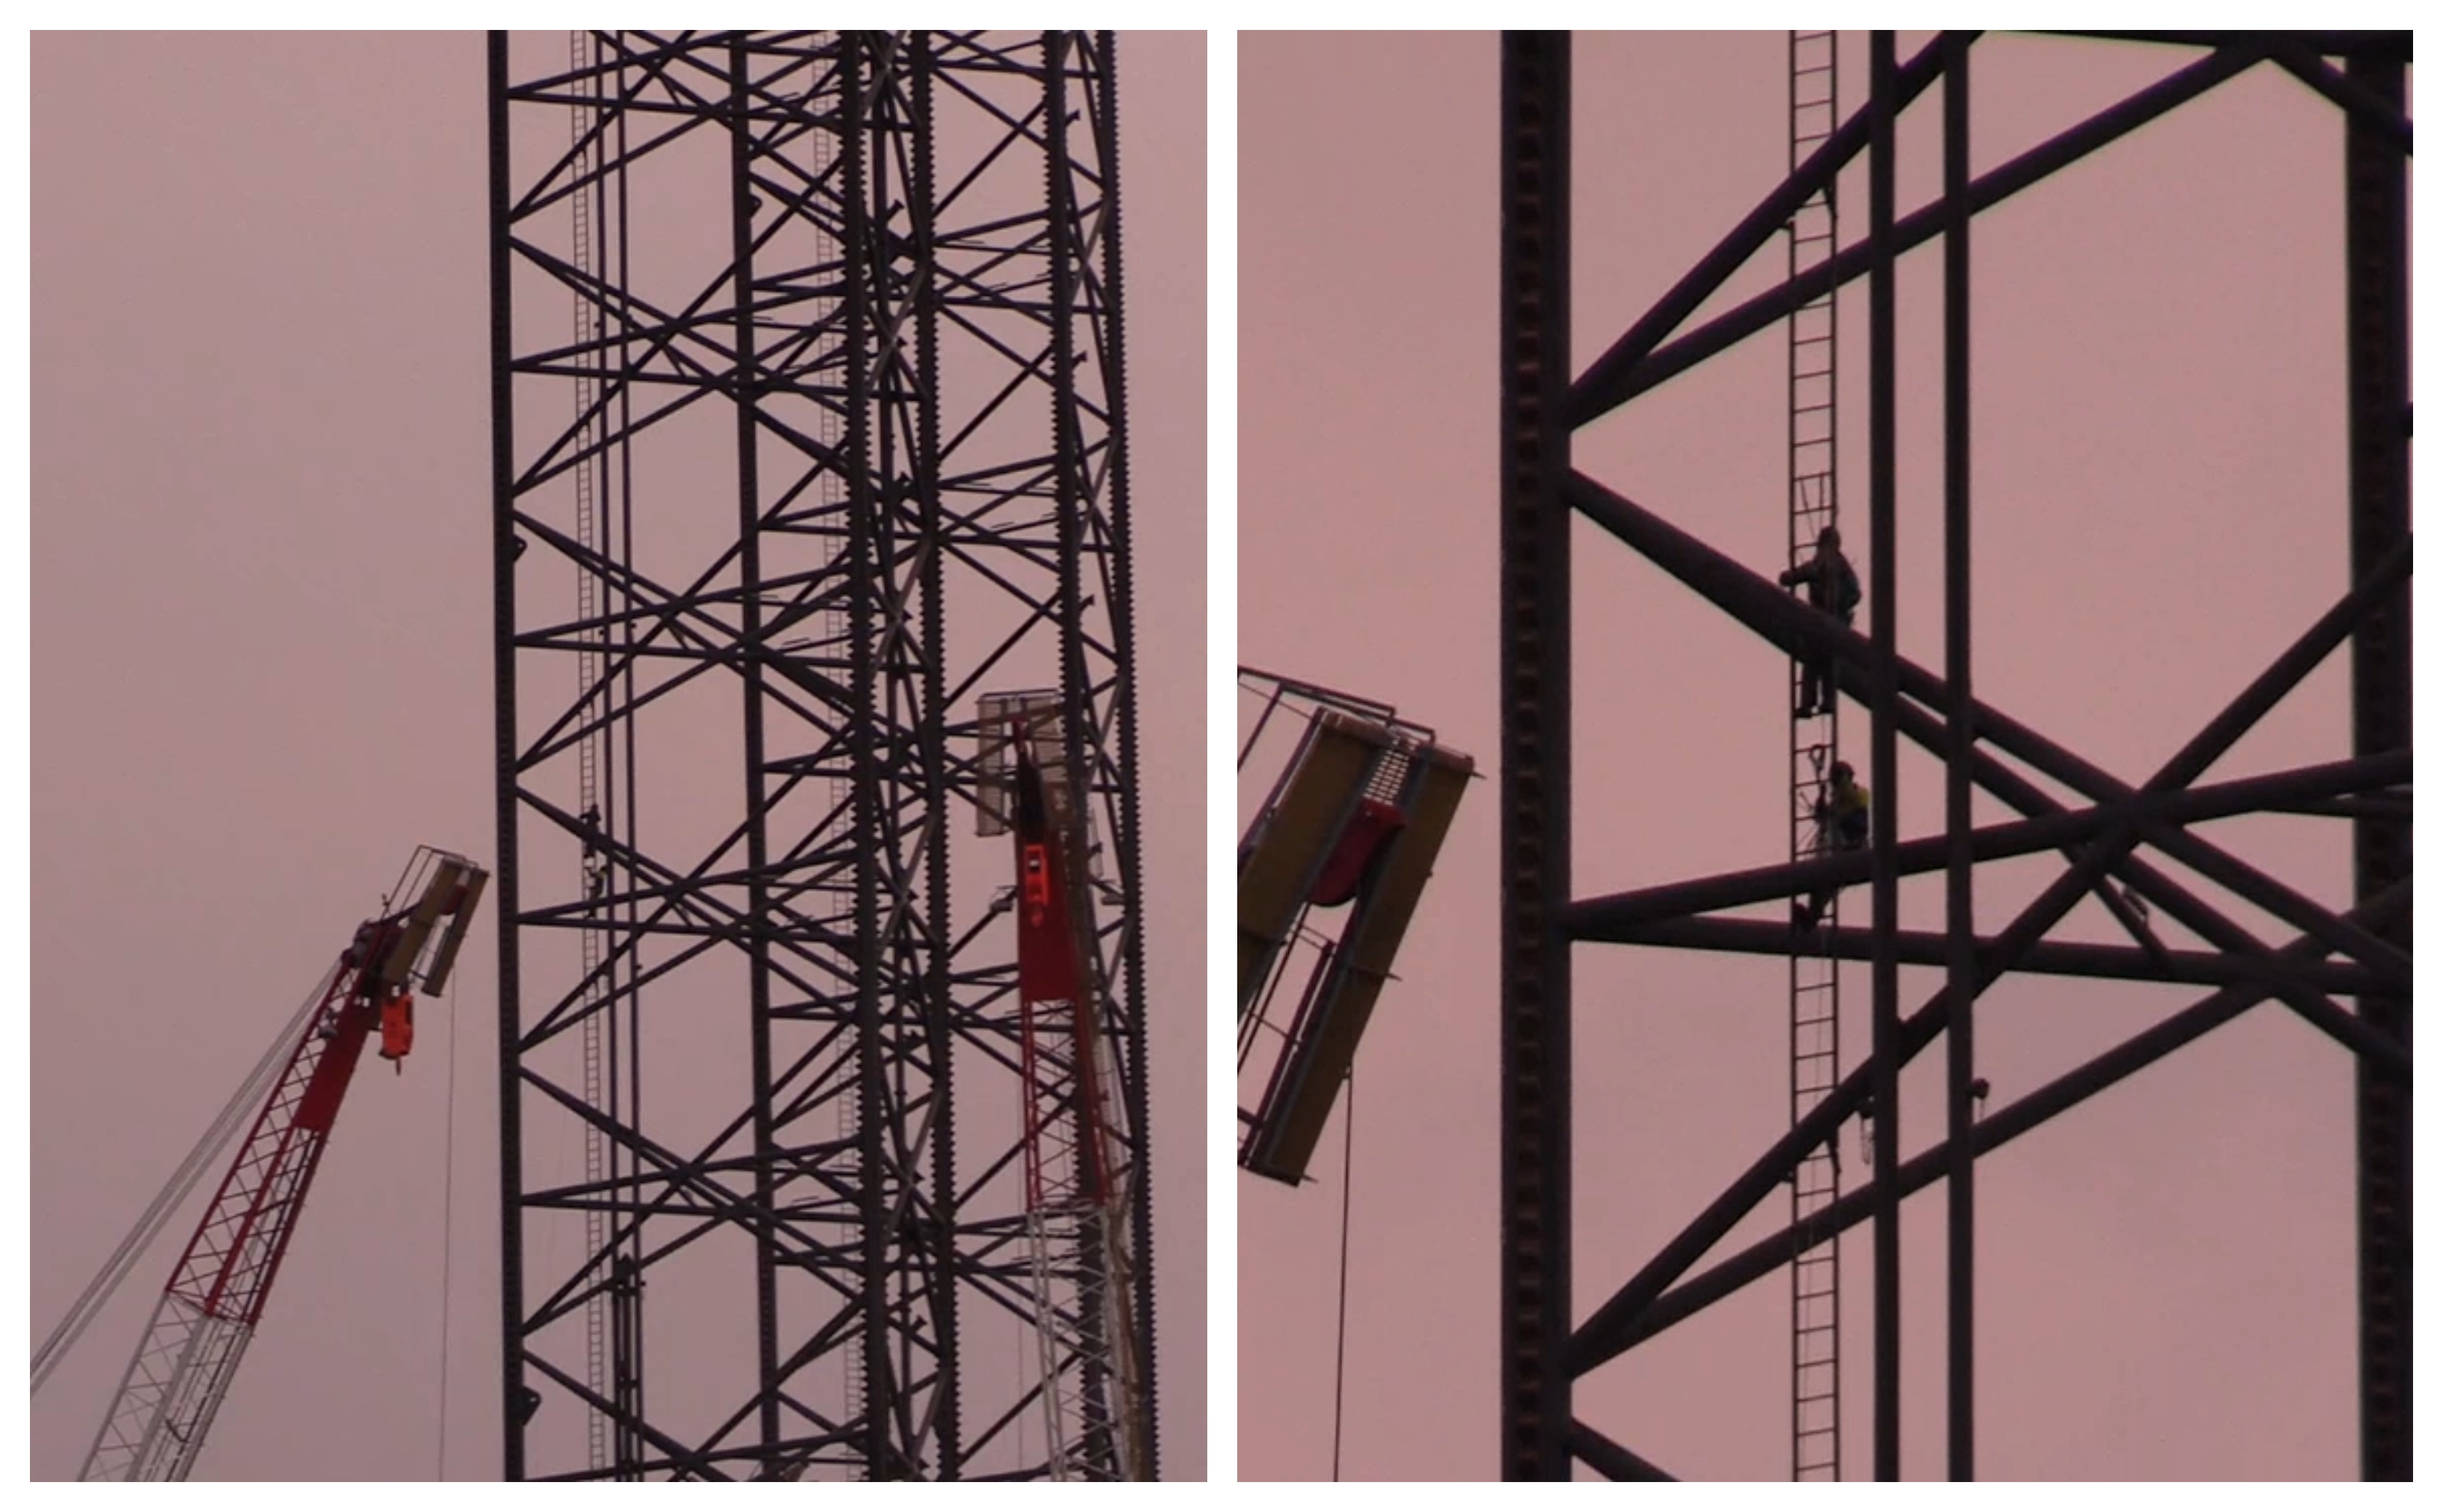 Two of the activists could be seen climbing up the 500ft leg of the rig